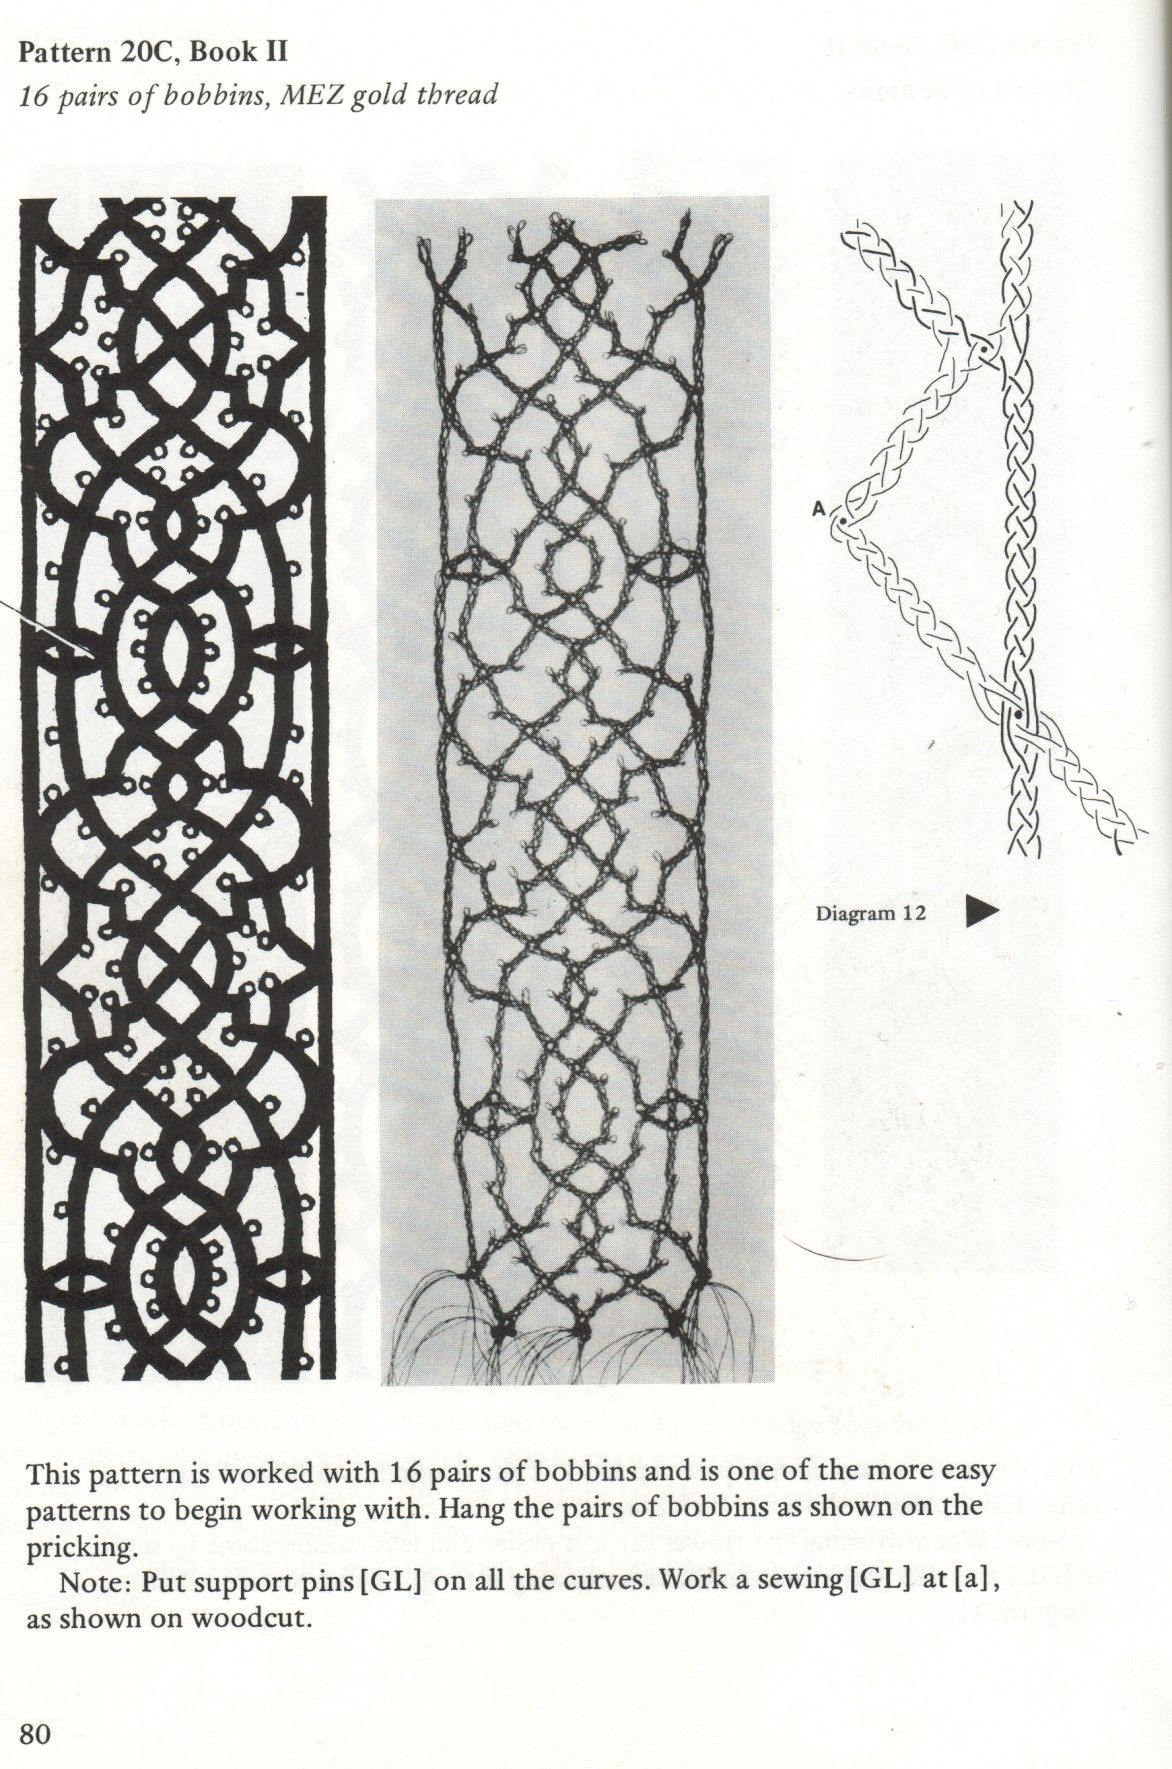 A Step Through Time Instructions And Lace From Le Pompe 1559 Pattern For Venetian Bobbin Lace Bobbin Lace Bobbin Lace Tutorial Bobbin Lace Patterns